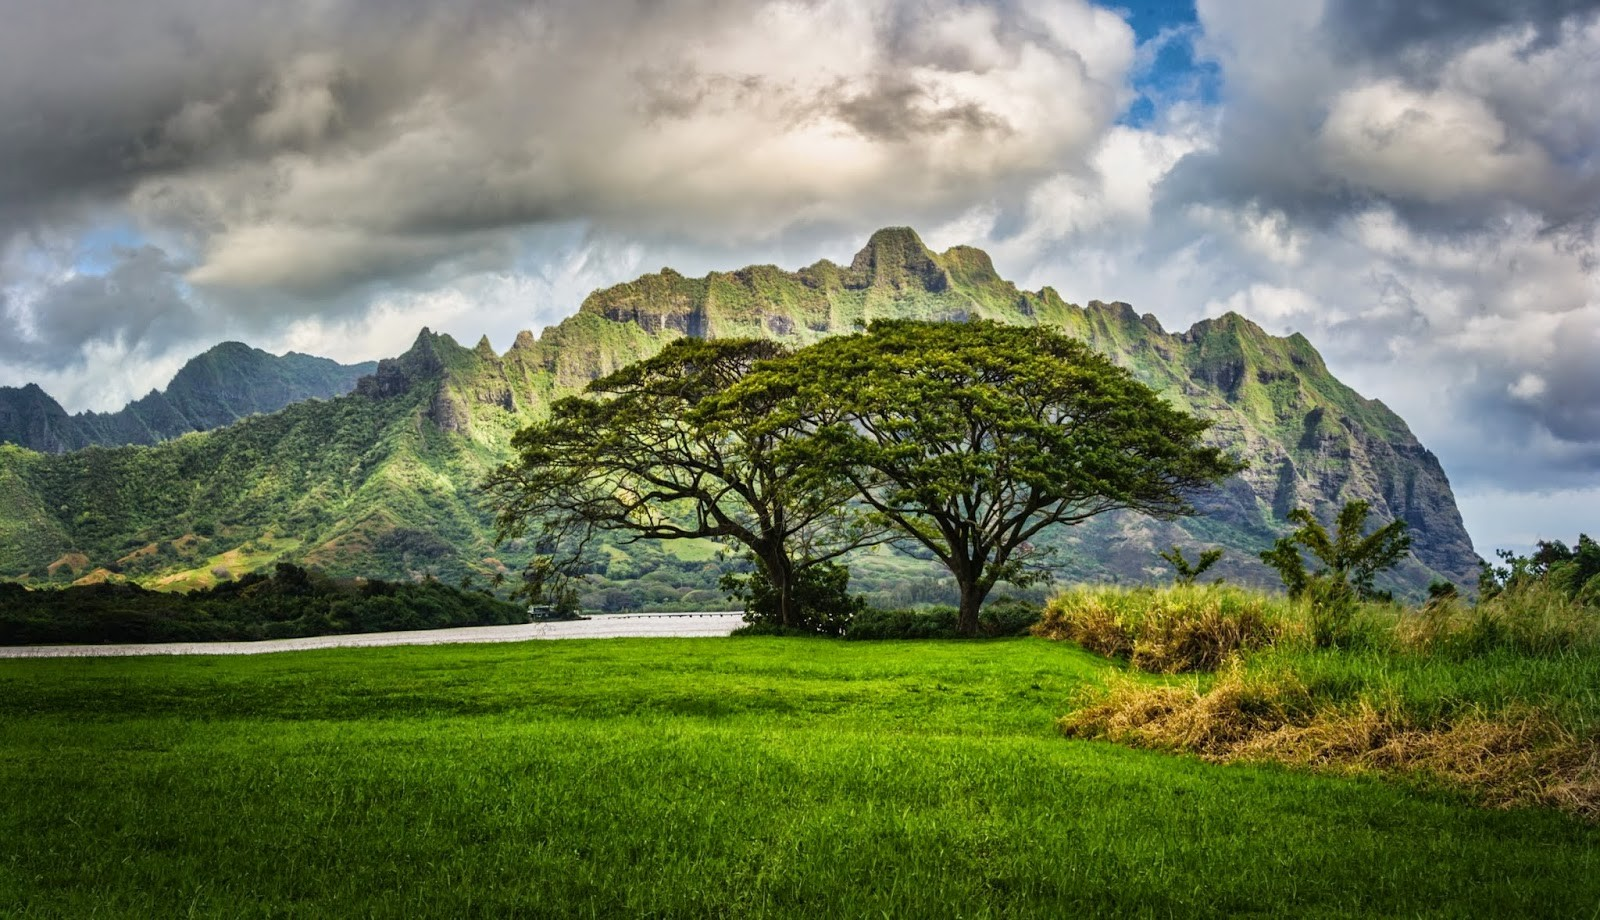 trees mountains landscape clouds grass river green nature